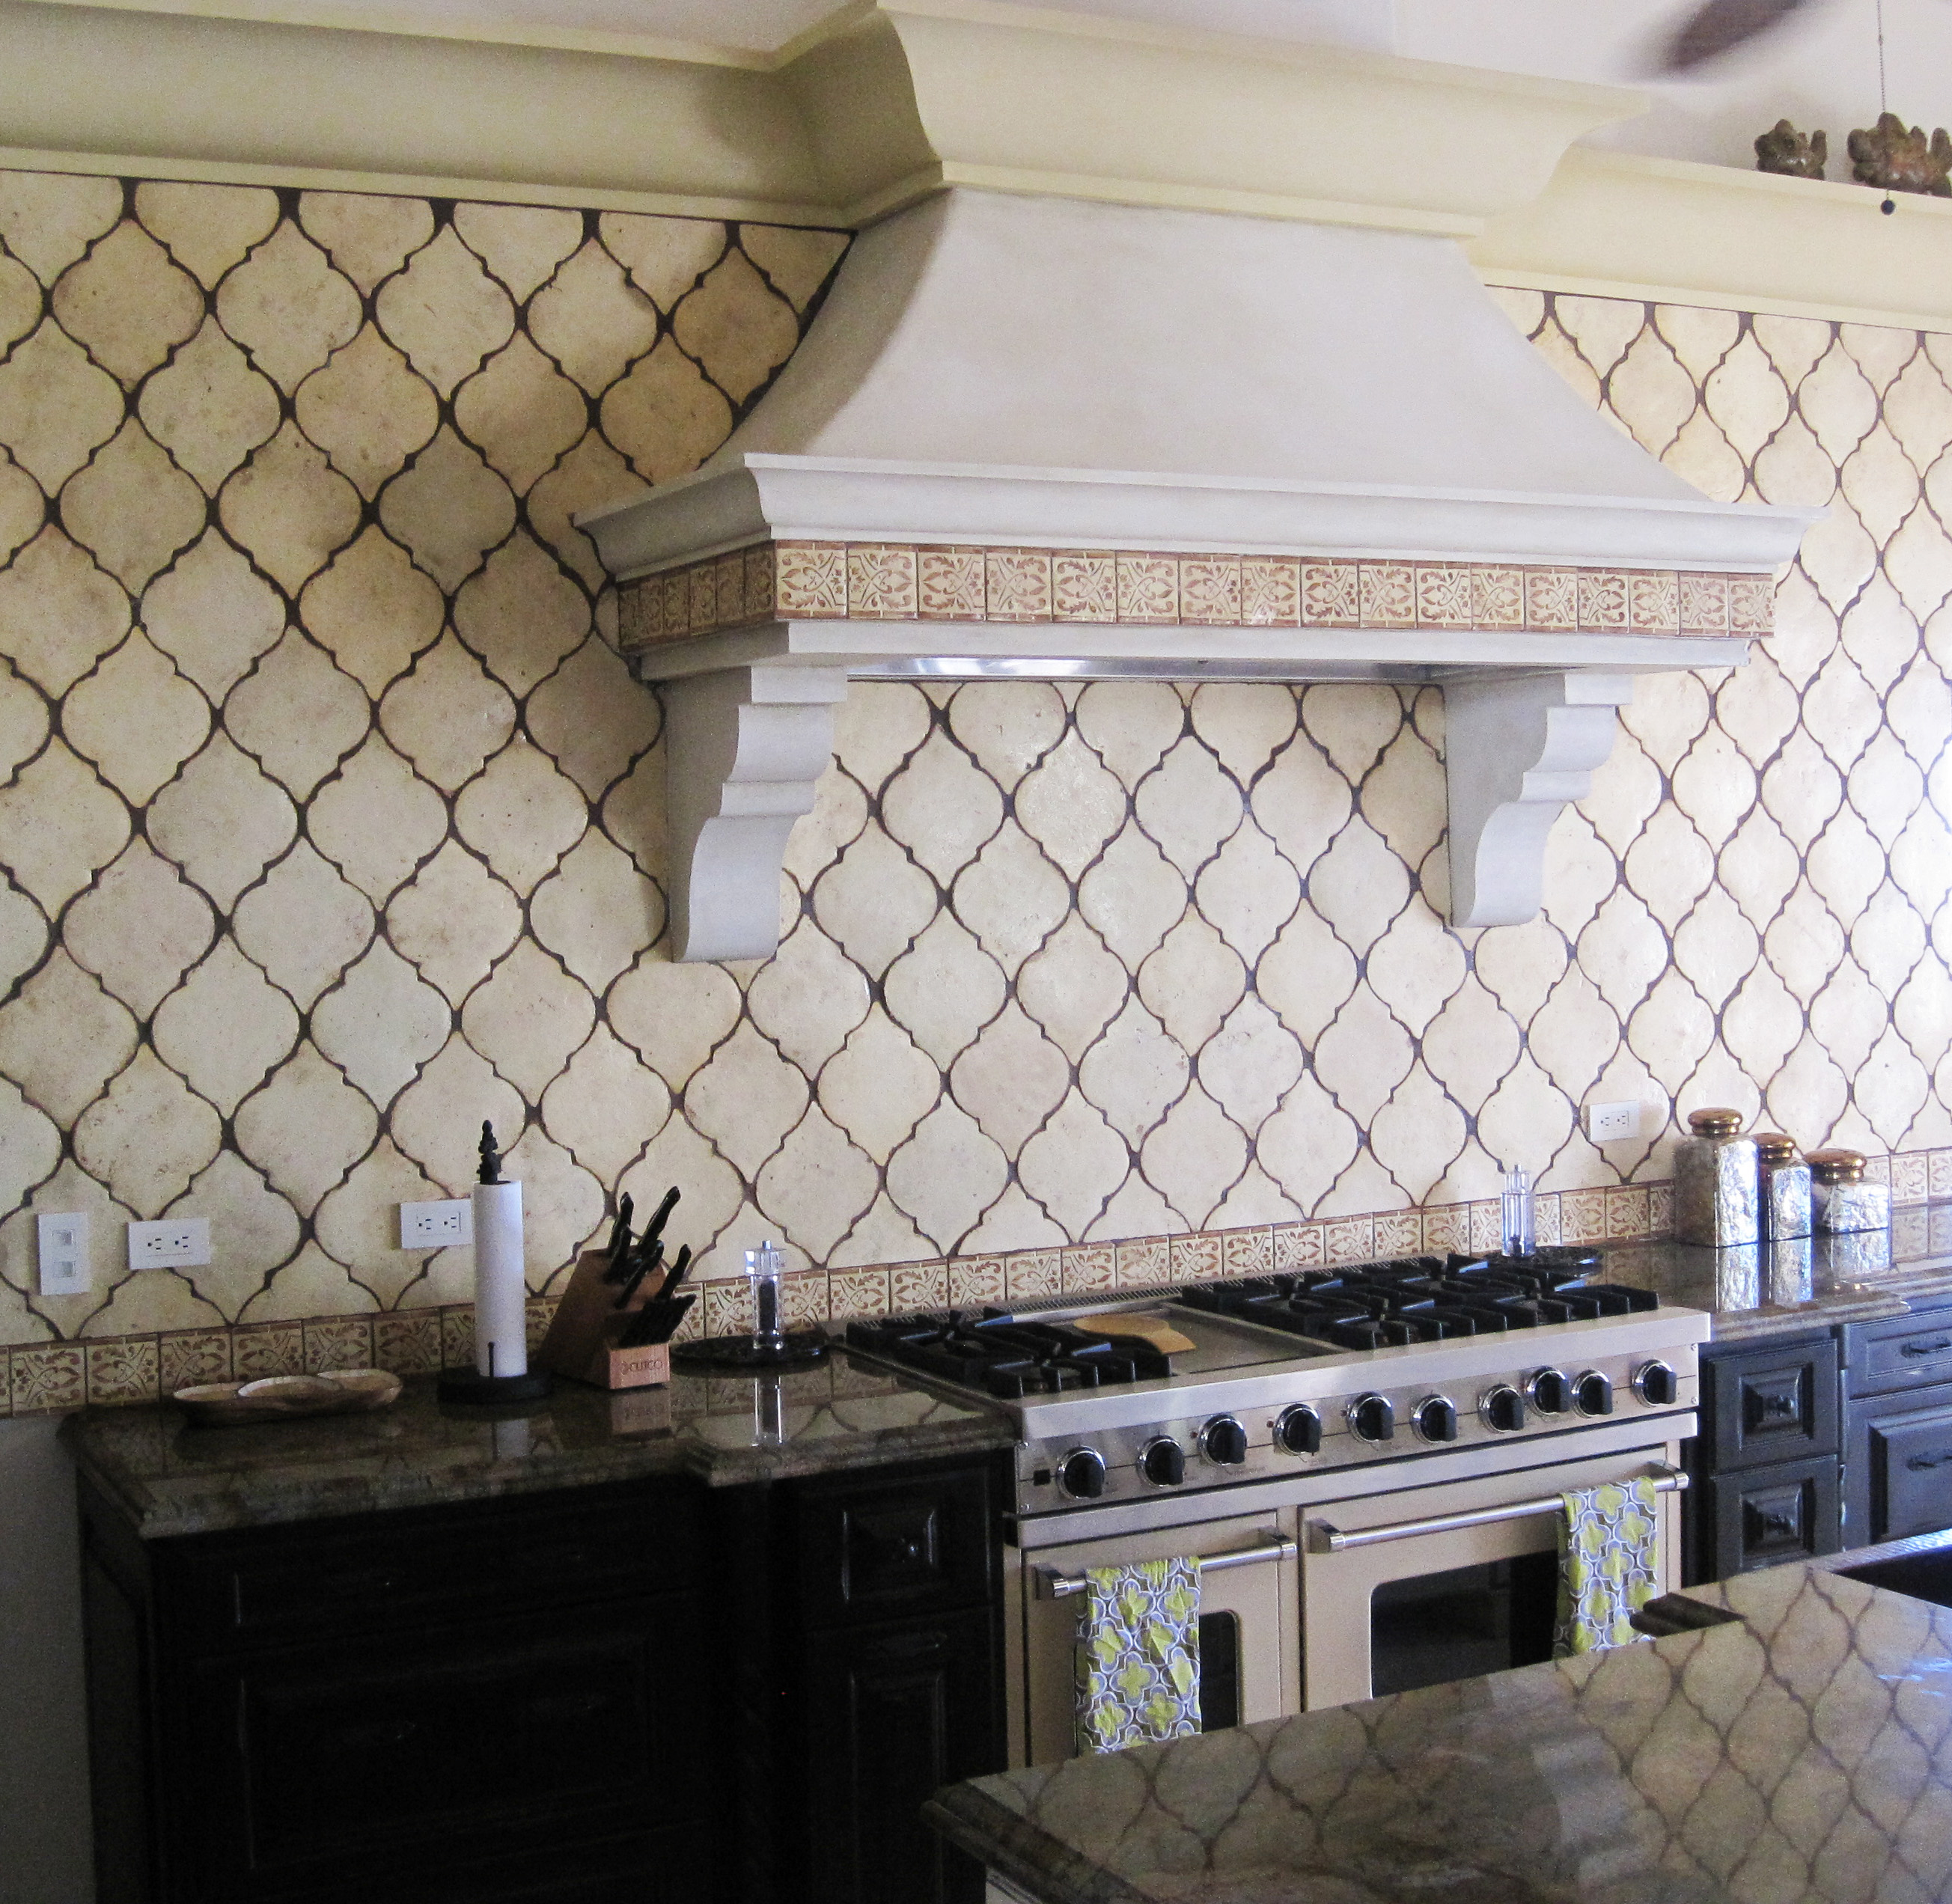 Photo Of Kitchen Tiles: Kitchen Studio Of Naples, Inc